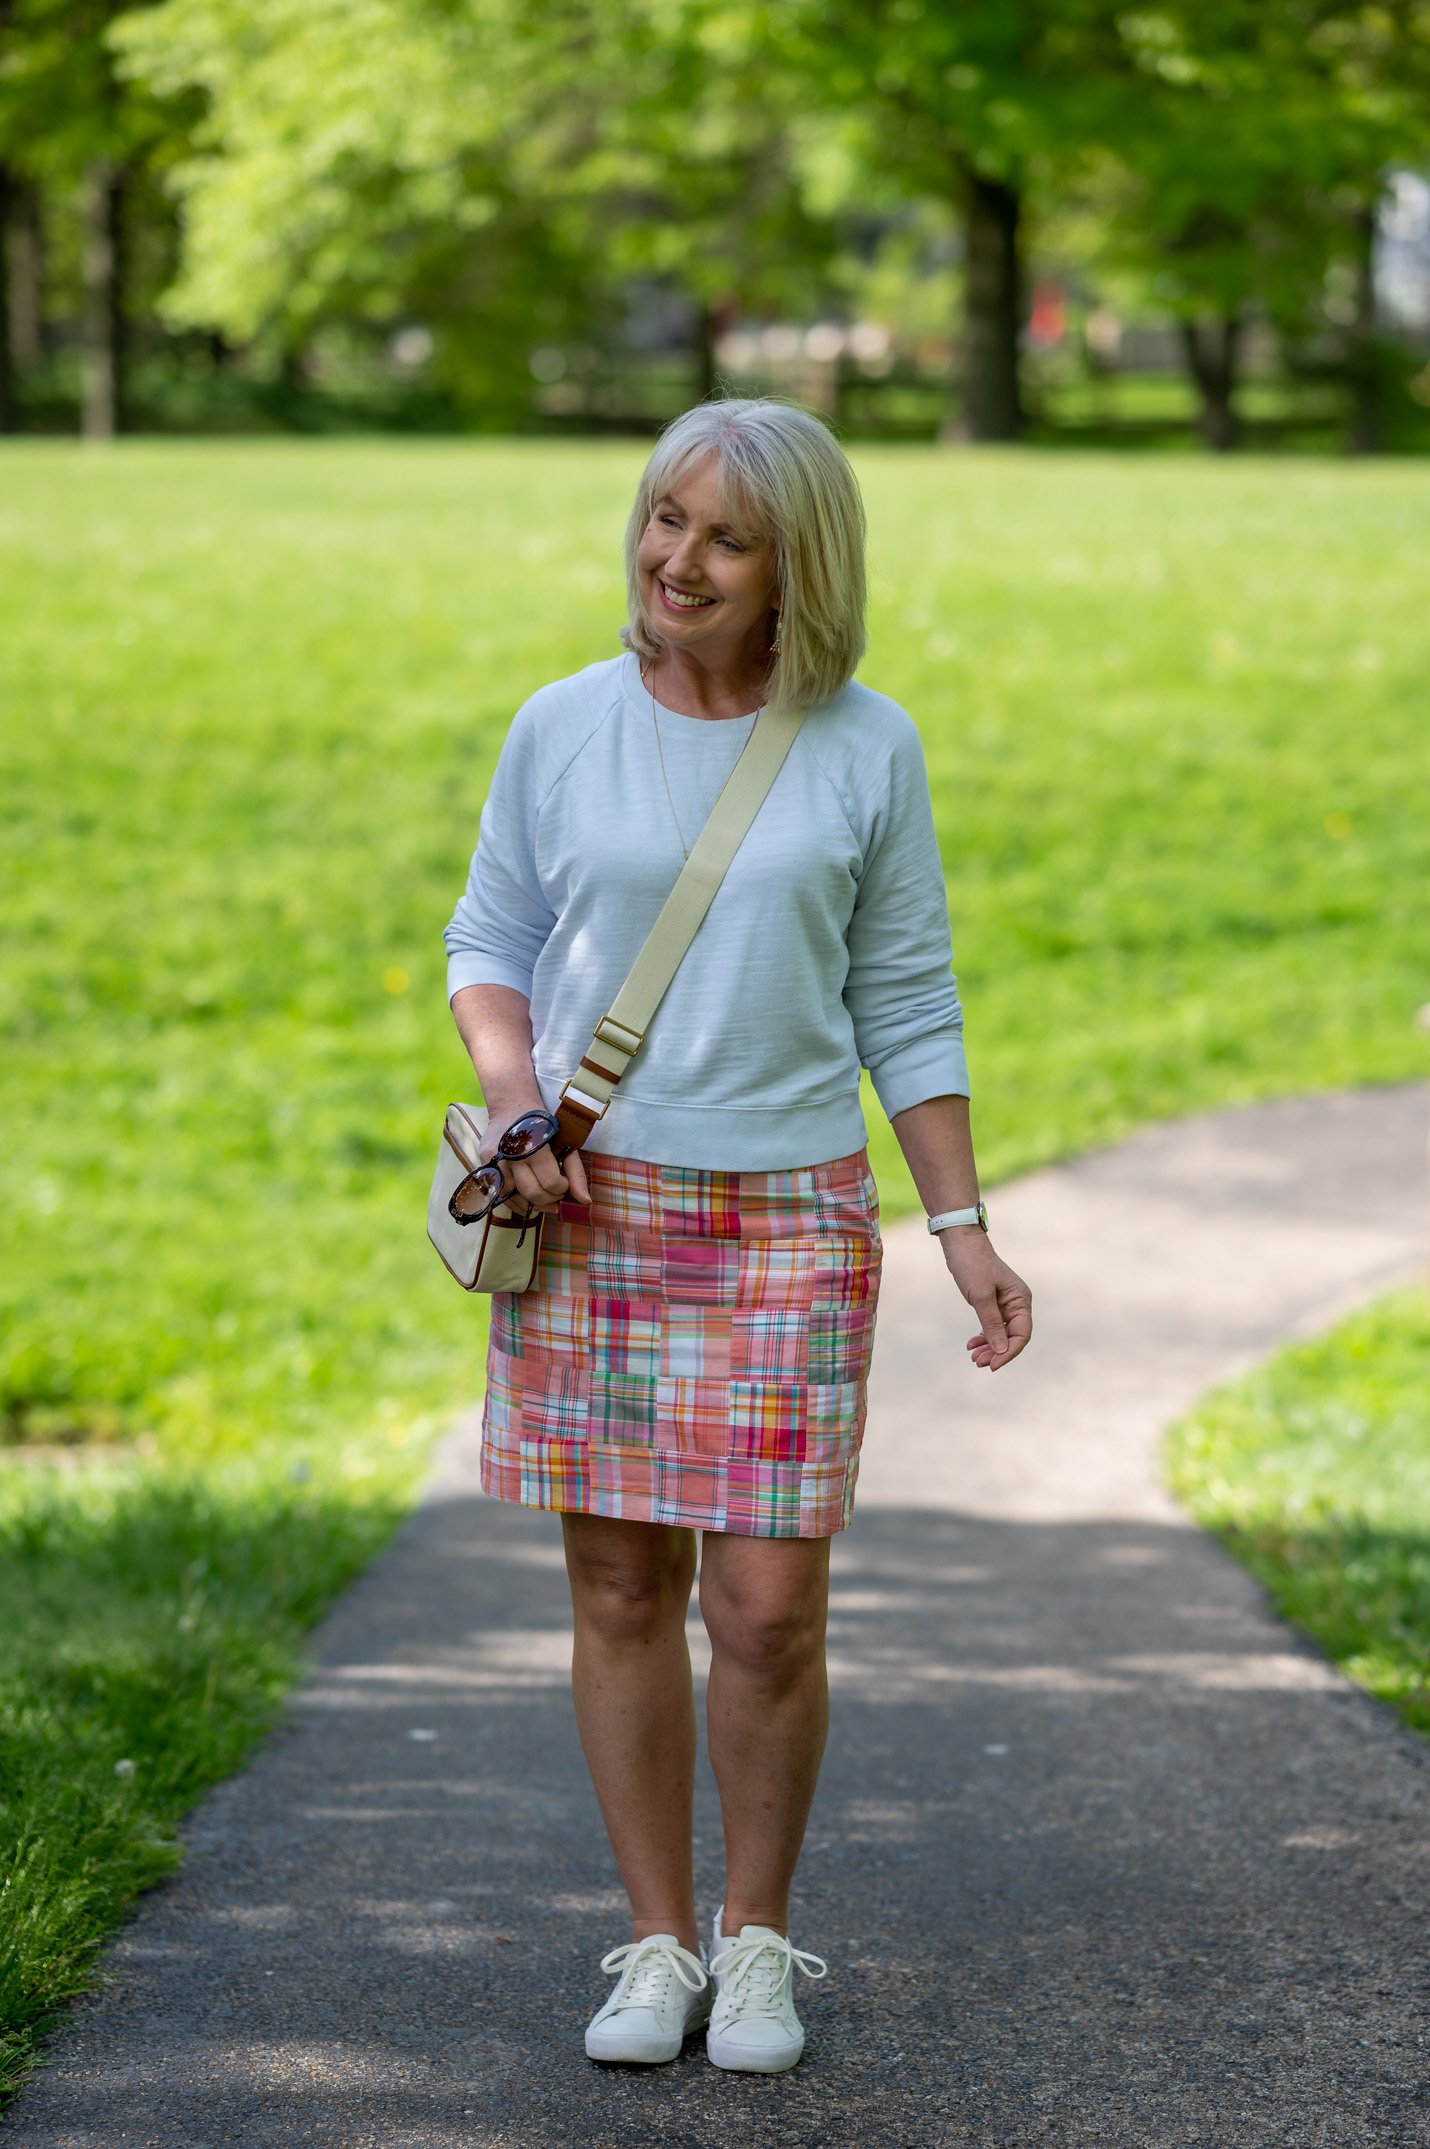 Colorful A-Line Skirt with Soft Blue Sweatshirt